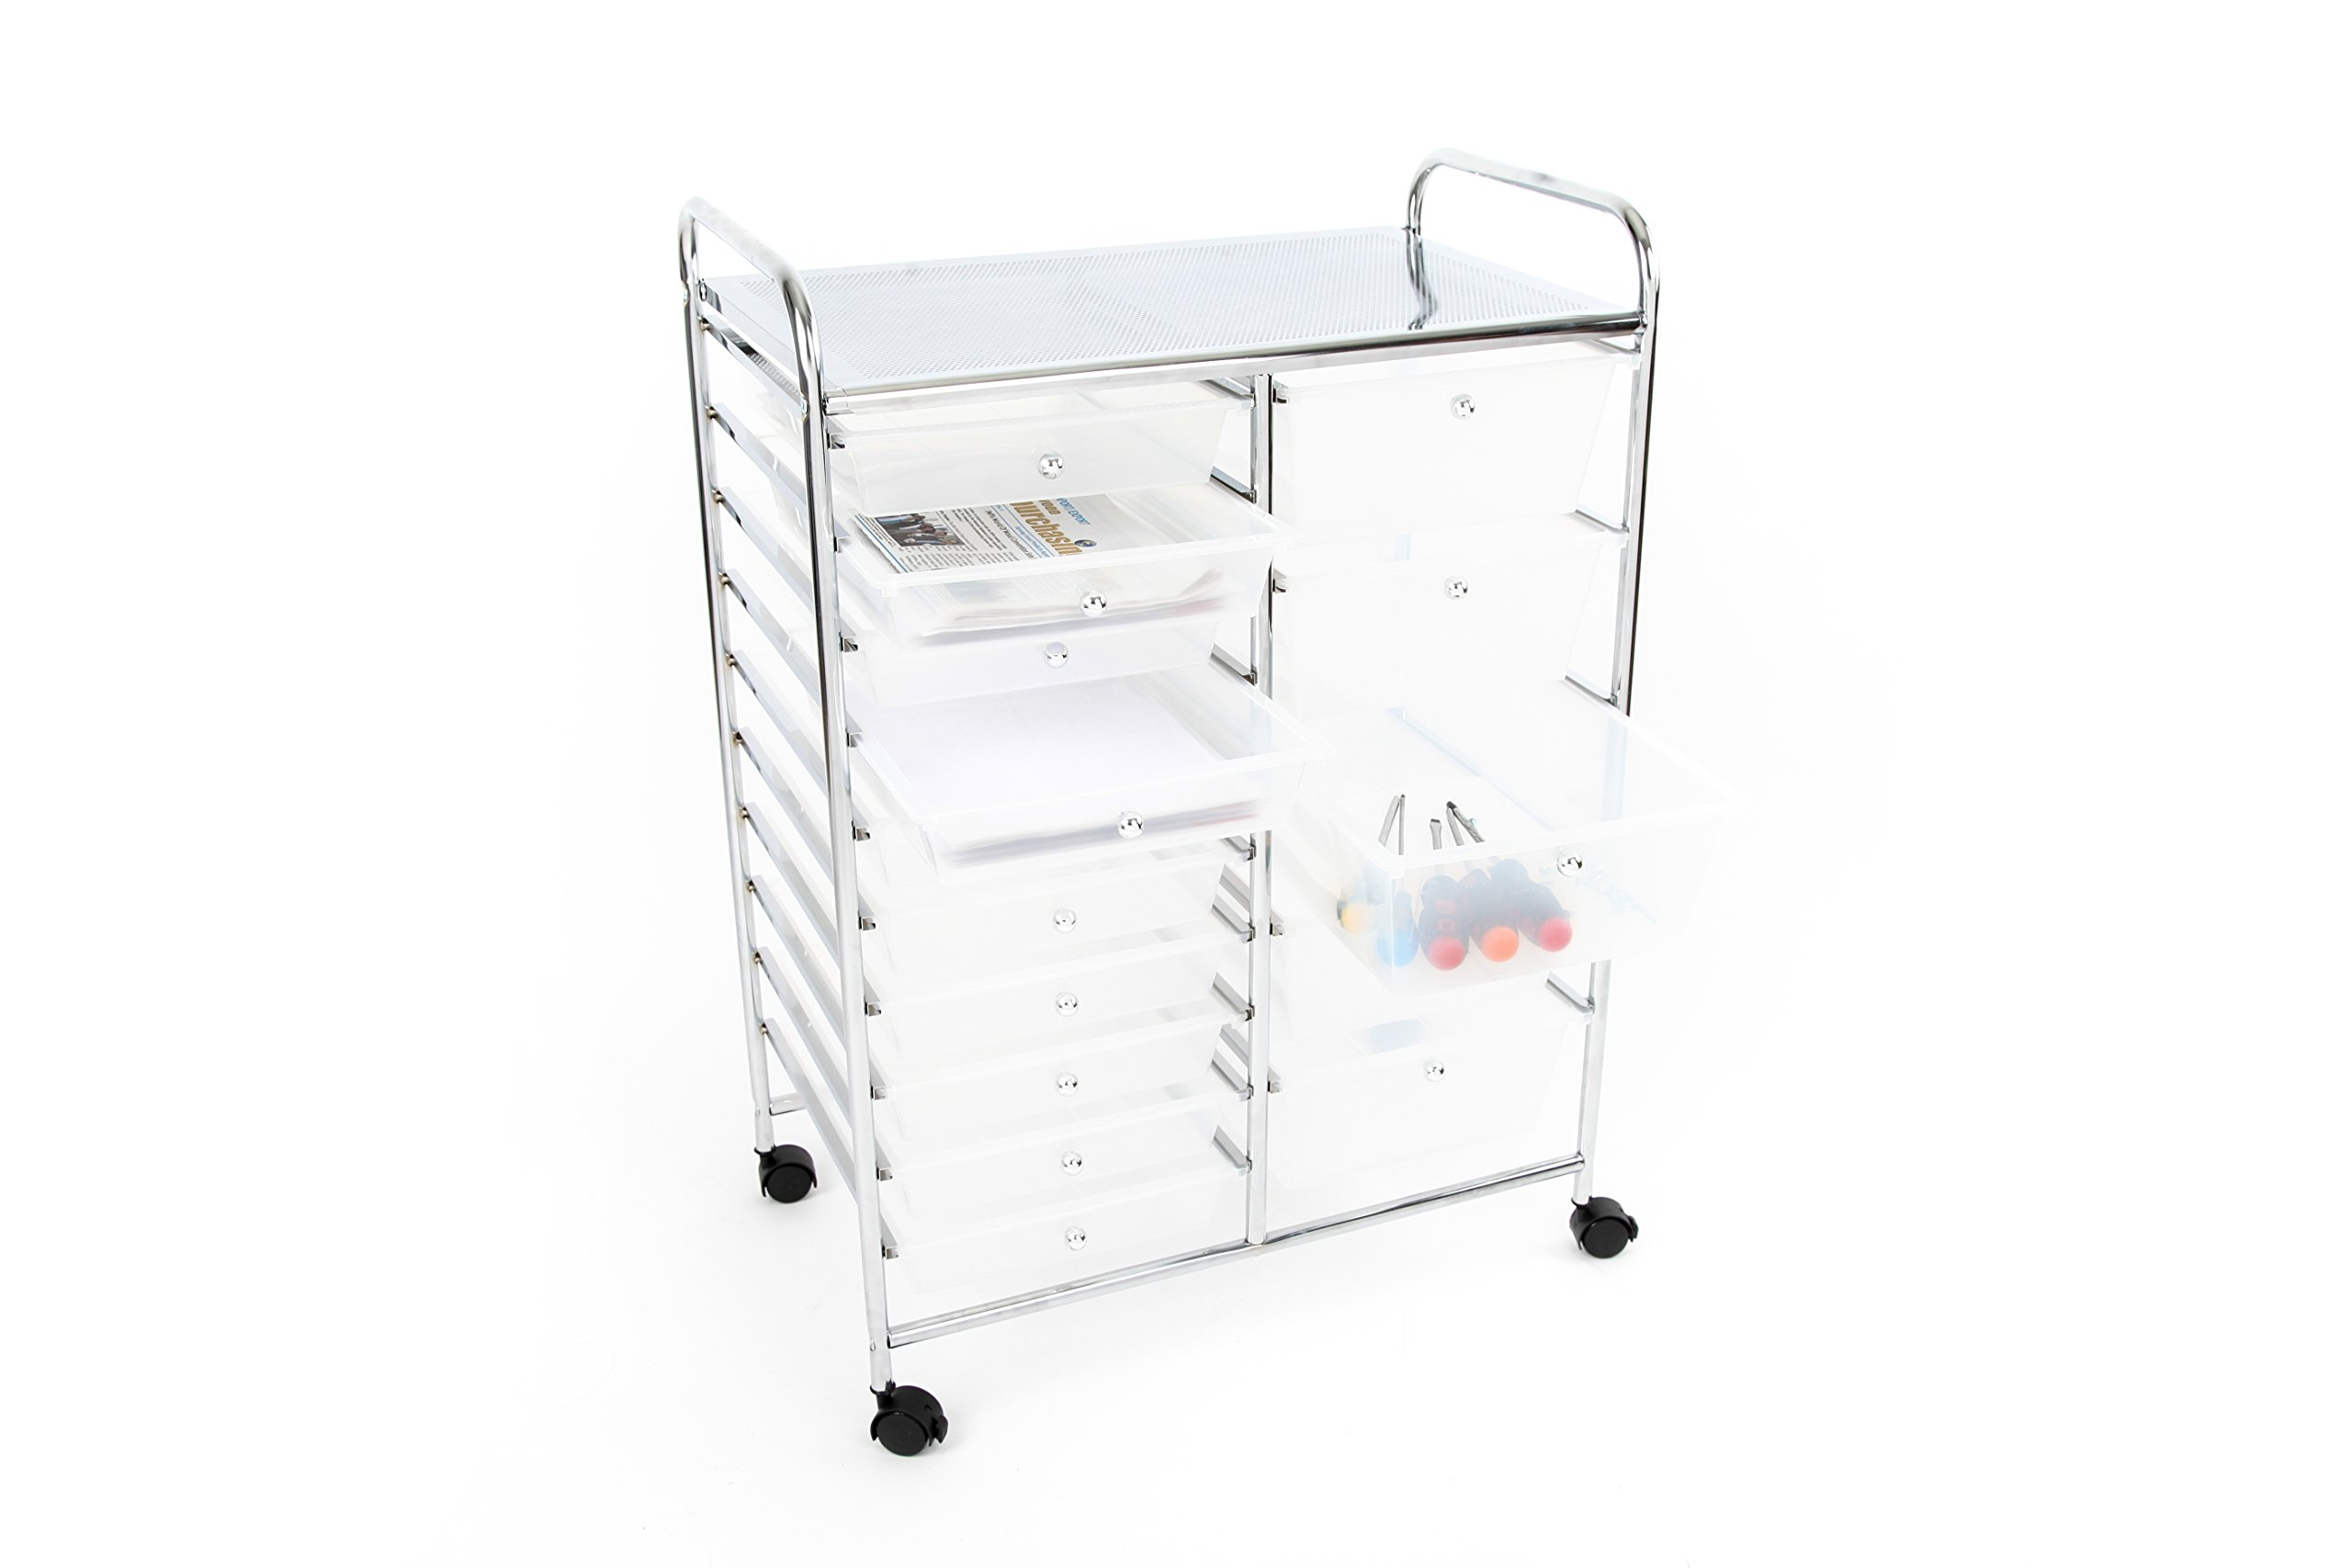 Finnhomy 15 Drawer Rolling Cart Organizer Storage Cart with Drawers Utility Cart for School Office Home Beauty Salon Storage Semi-Transparent White by Finnhomy (Image #7)